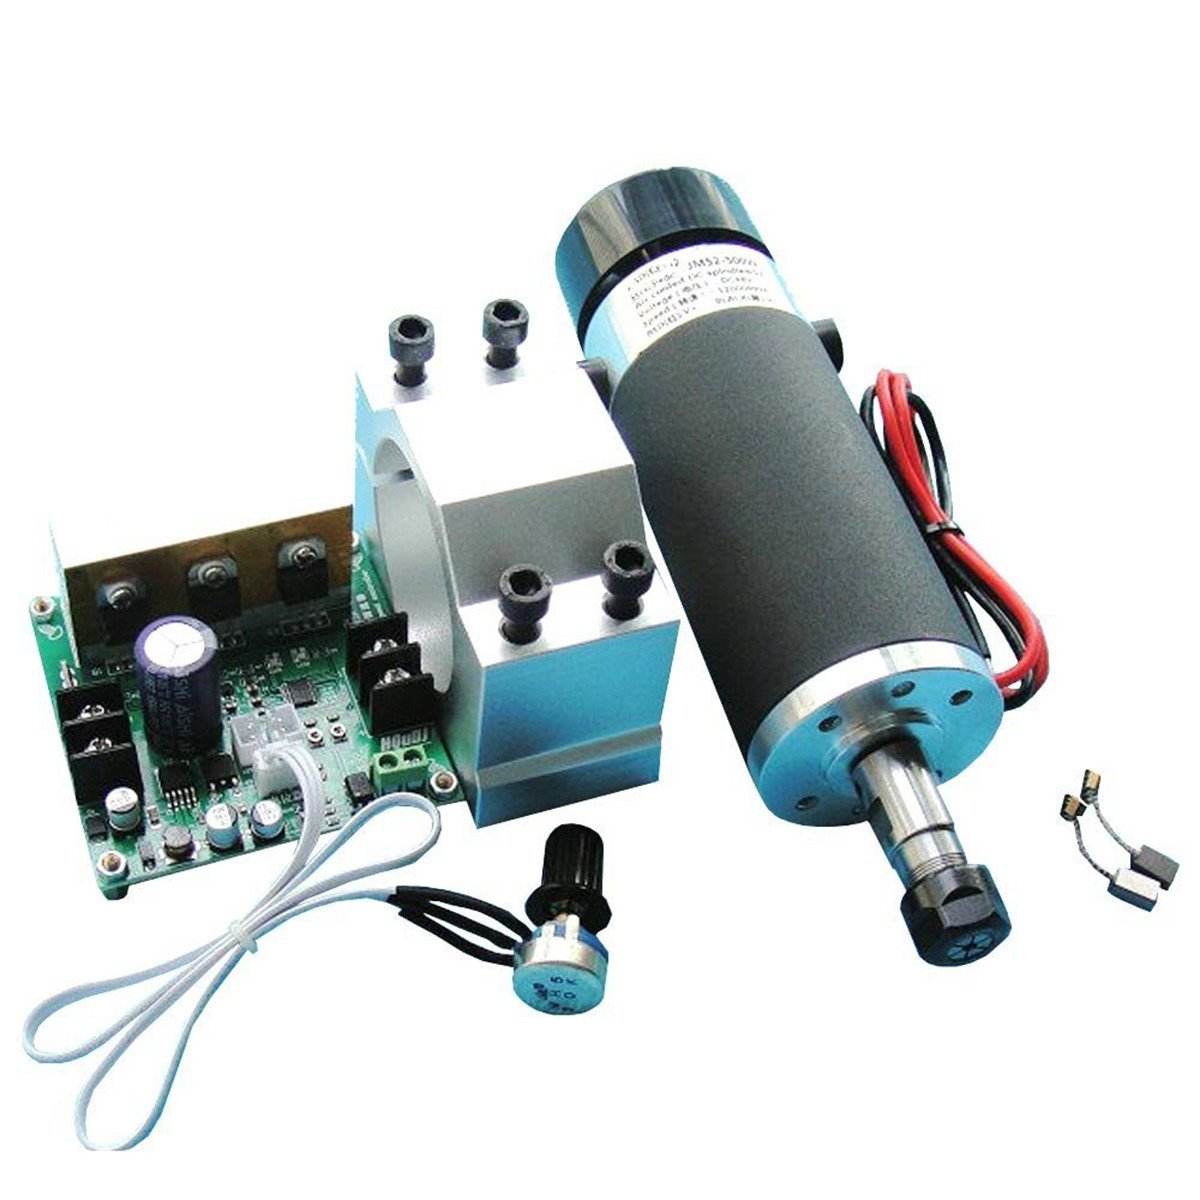 500W DC48V ER11 CNC High Speed Brush Air Cooling Spindle Motor + Mach3 PWM Motor Regulator + Fixed Seat for DIY Engraving